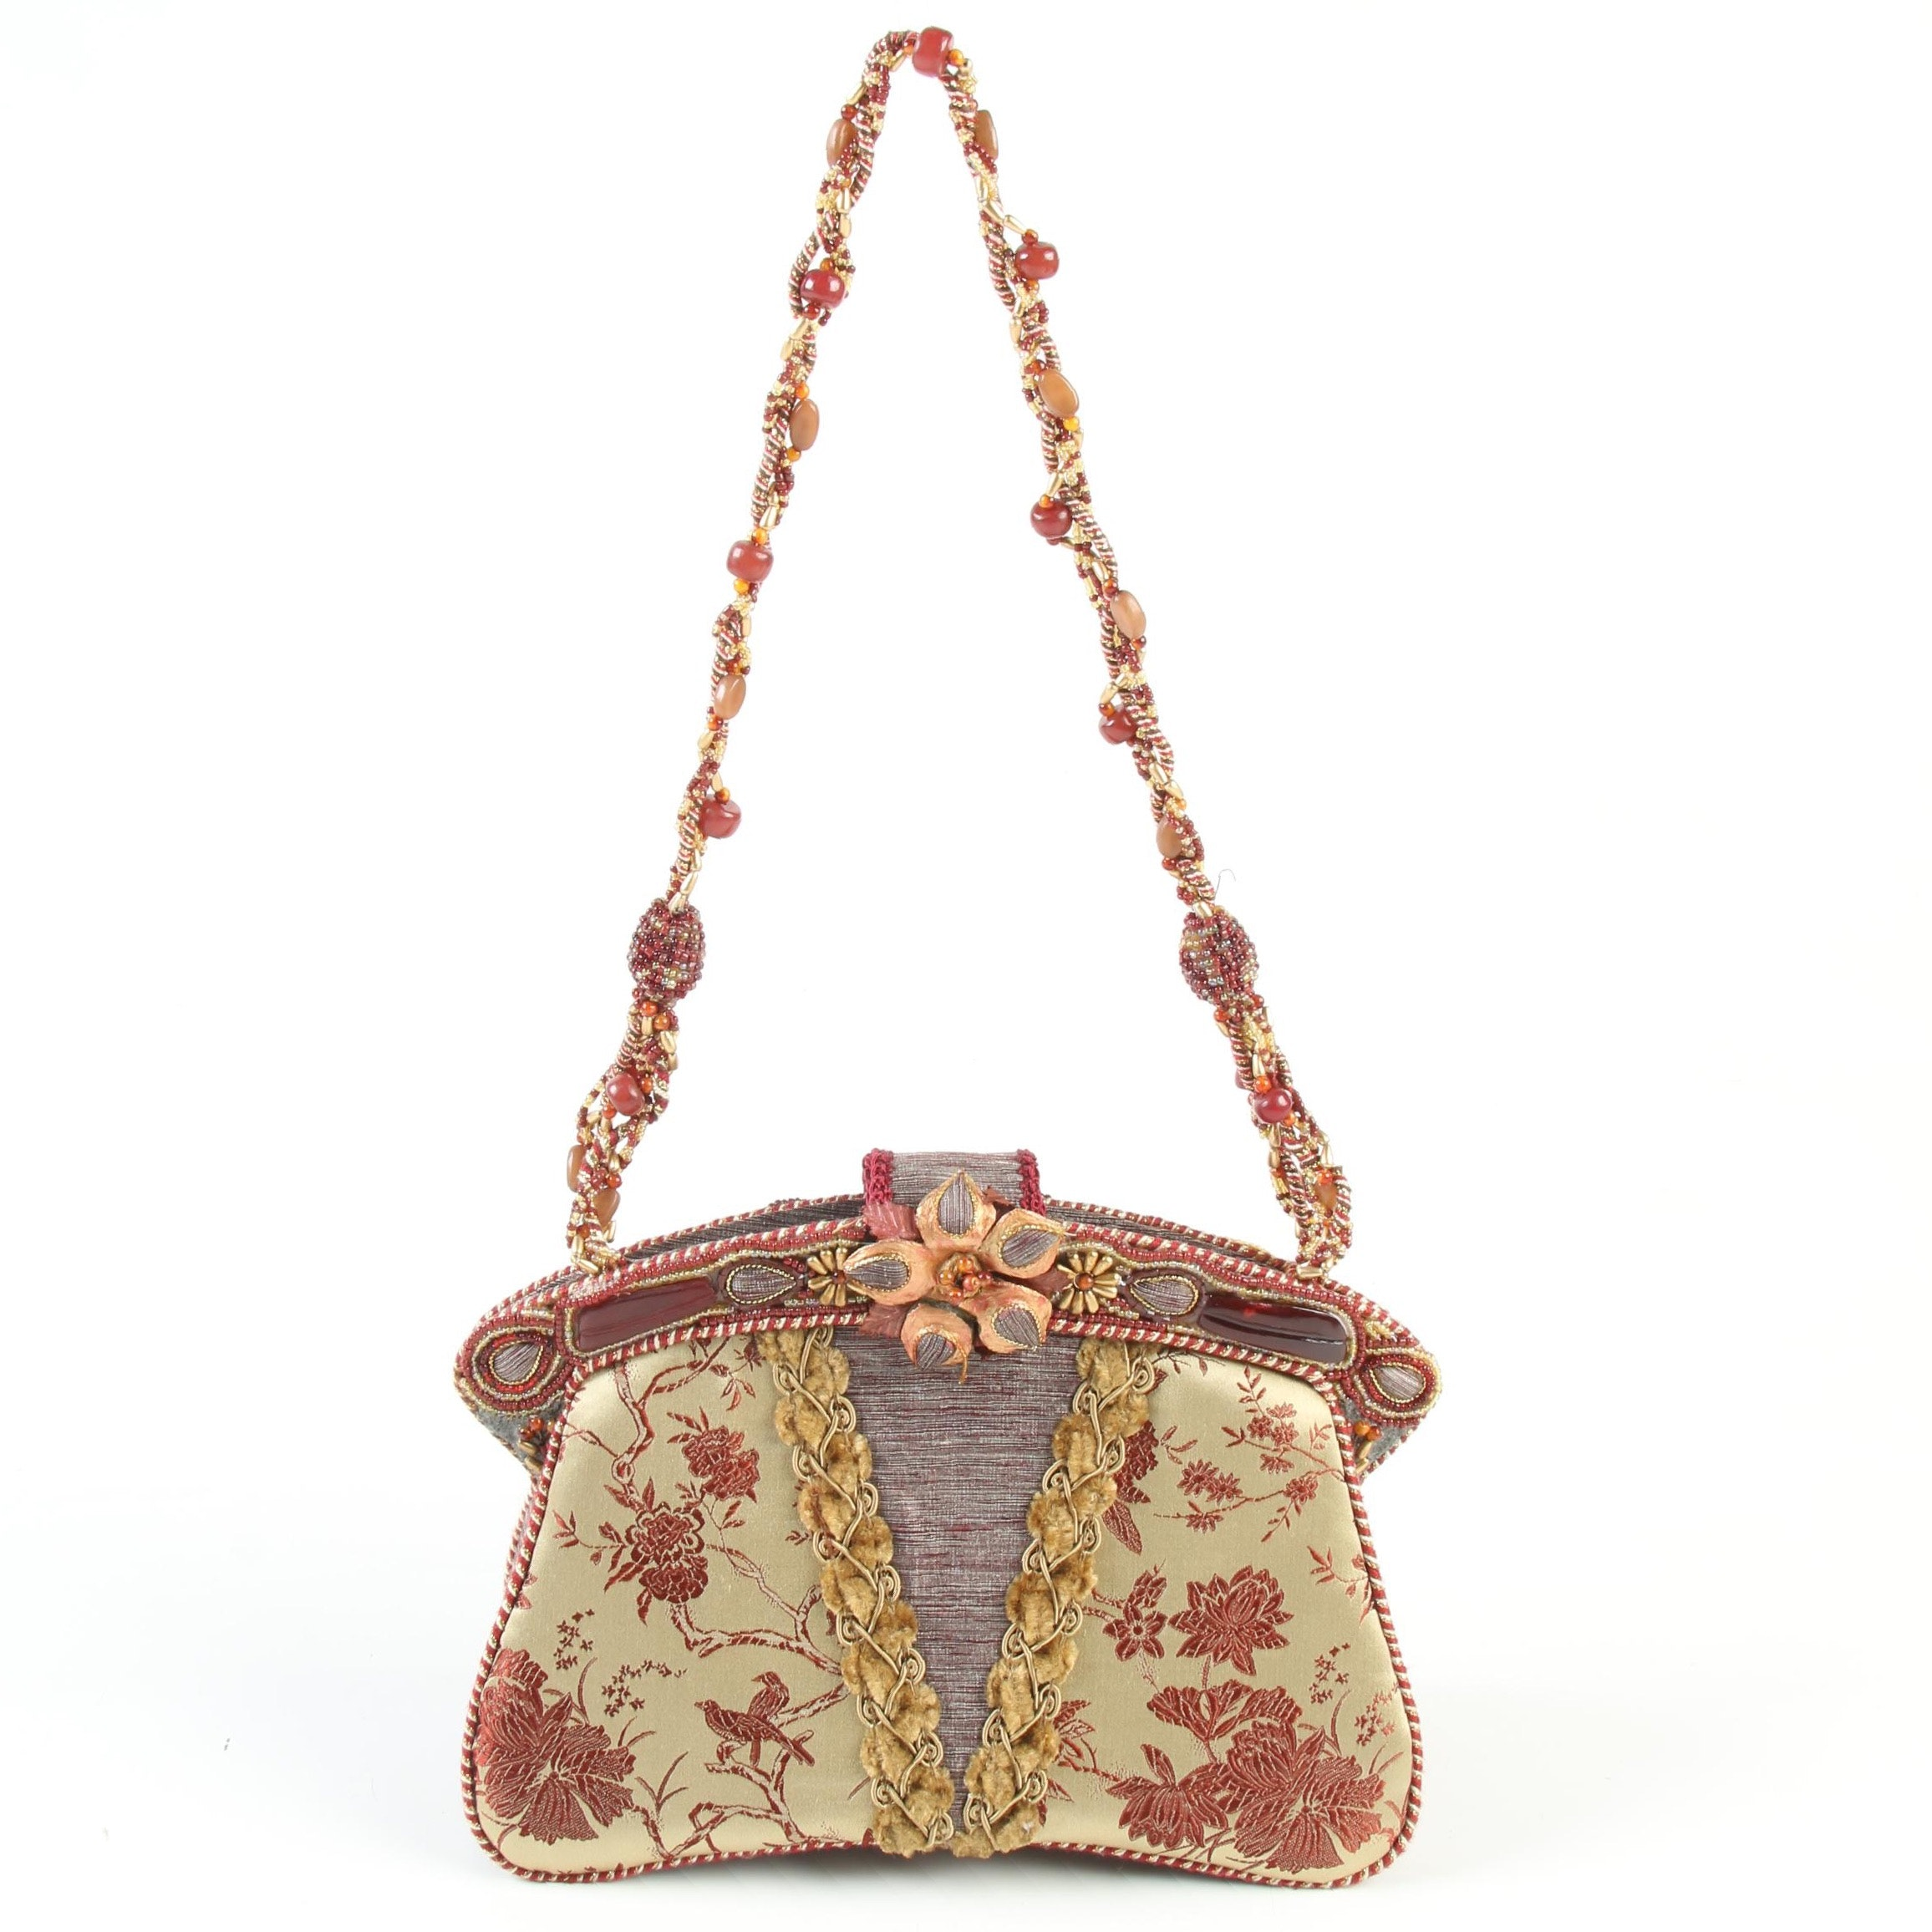 Mary Frances Embellished Handbag with Chinoiserie Motif Brocade